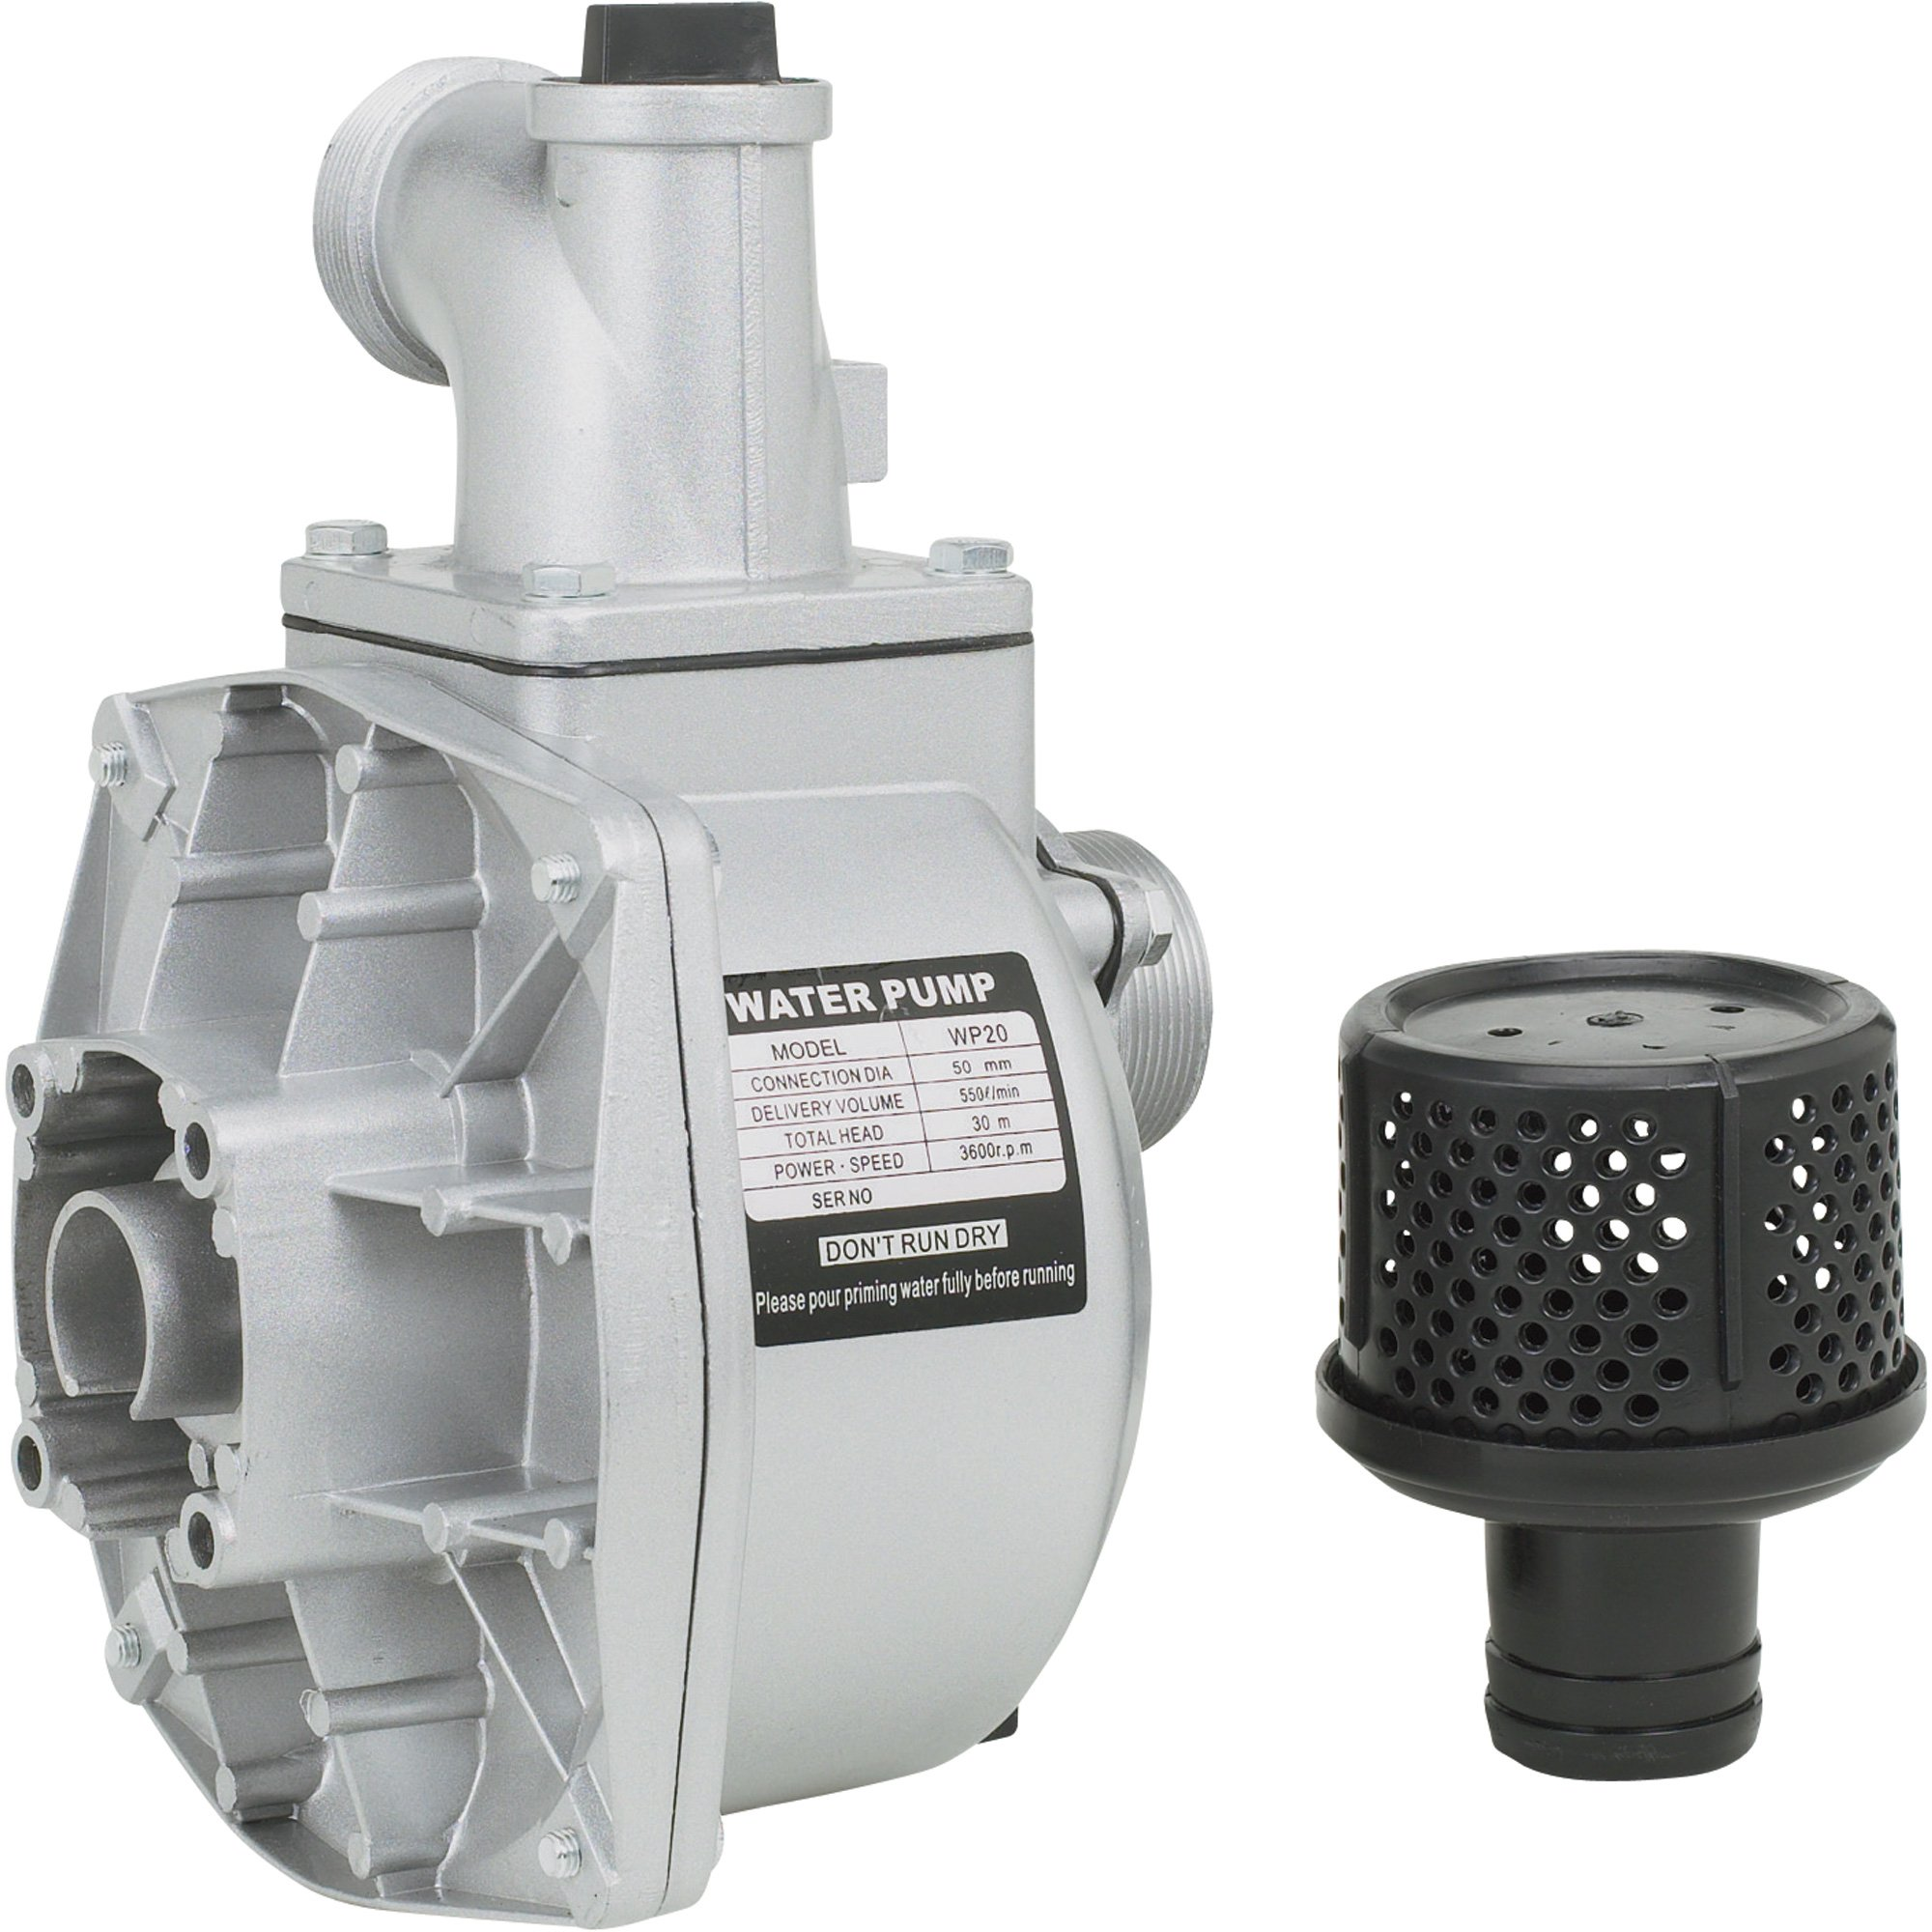 Semi-Trash Water Pump ONLY - For Threaded Shafts, 2in. Ports, 7860 GPH by Northern Tool and Equipment (Image #1)